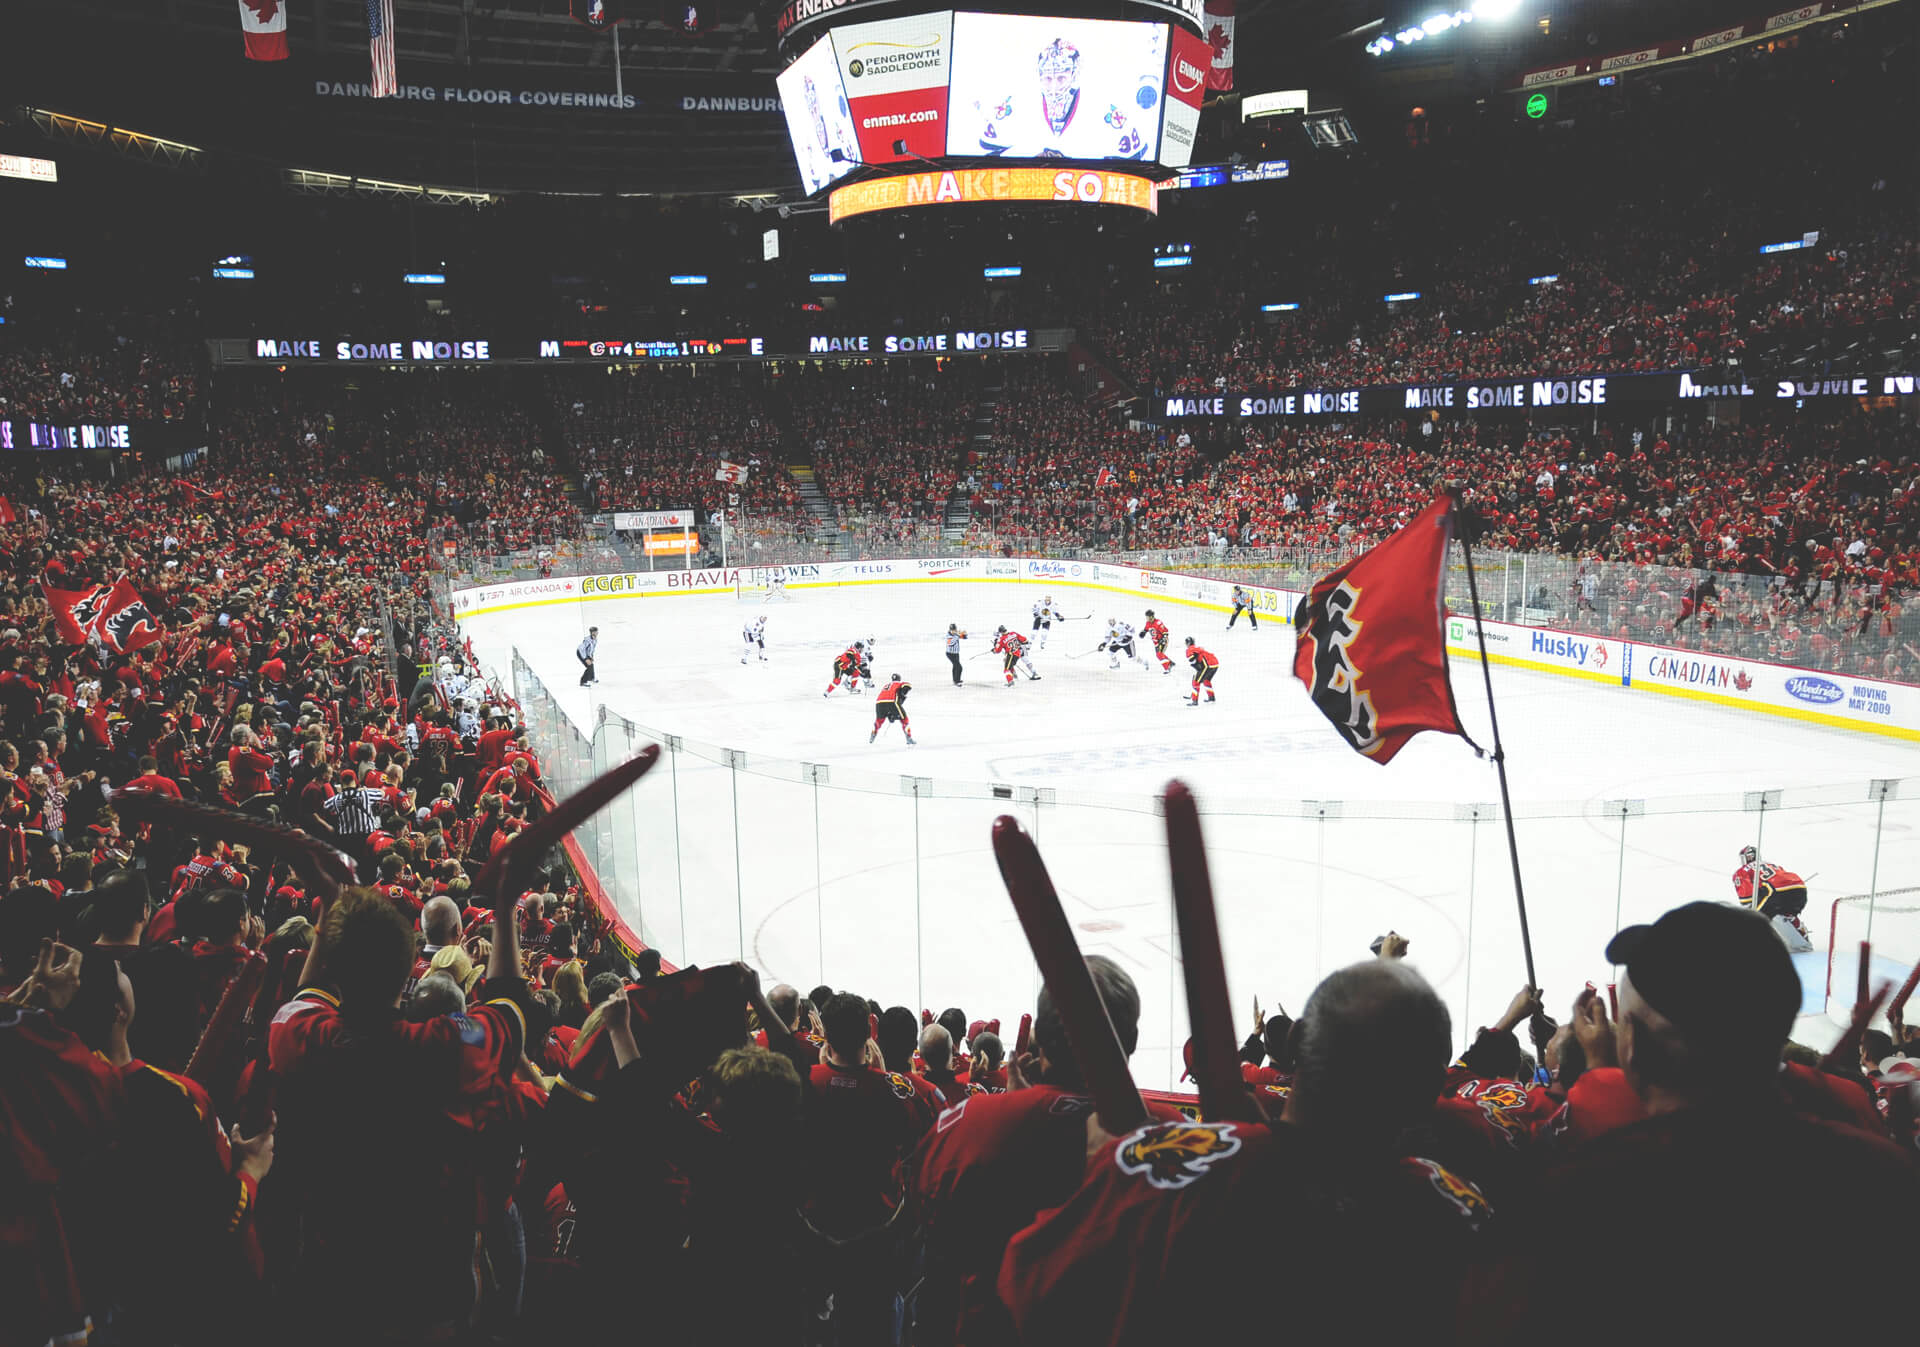 NHL action with the Calgary Flames at the Scotiabank Saddledome